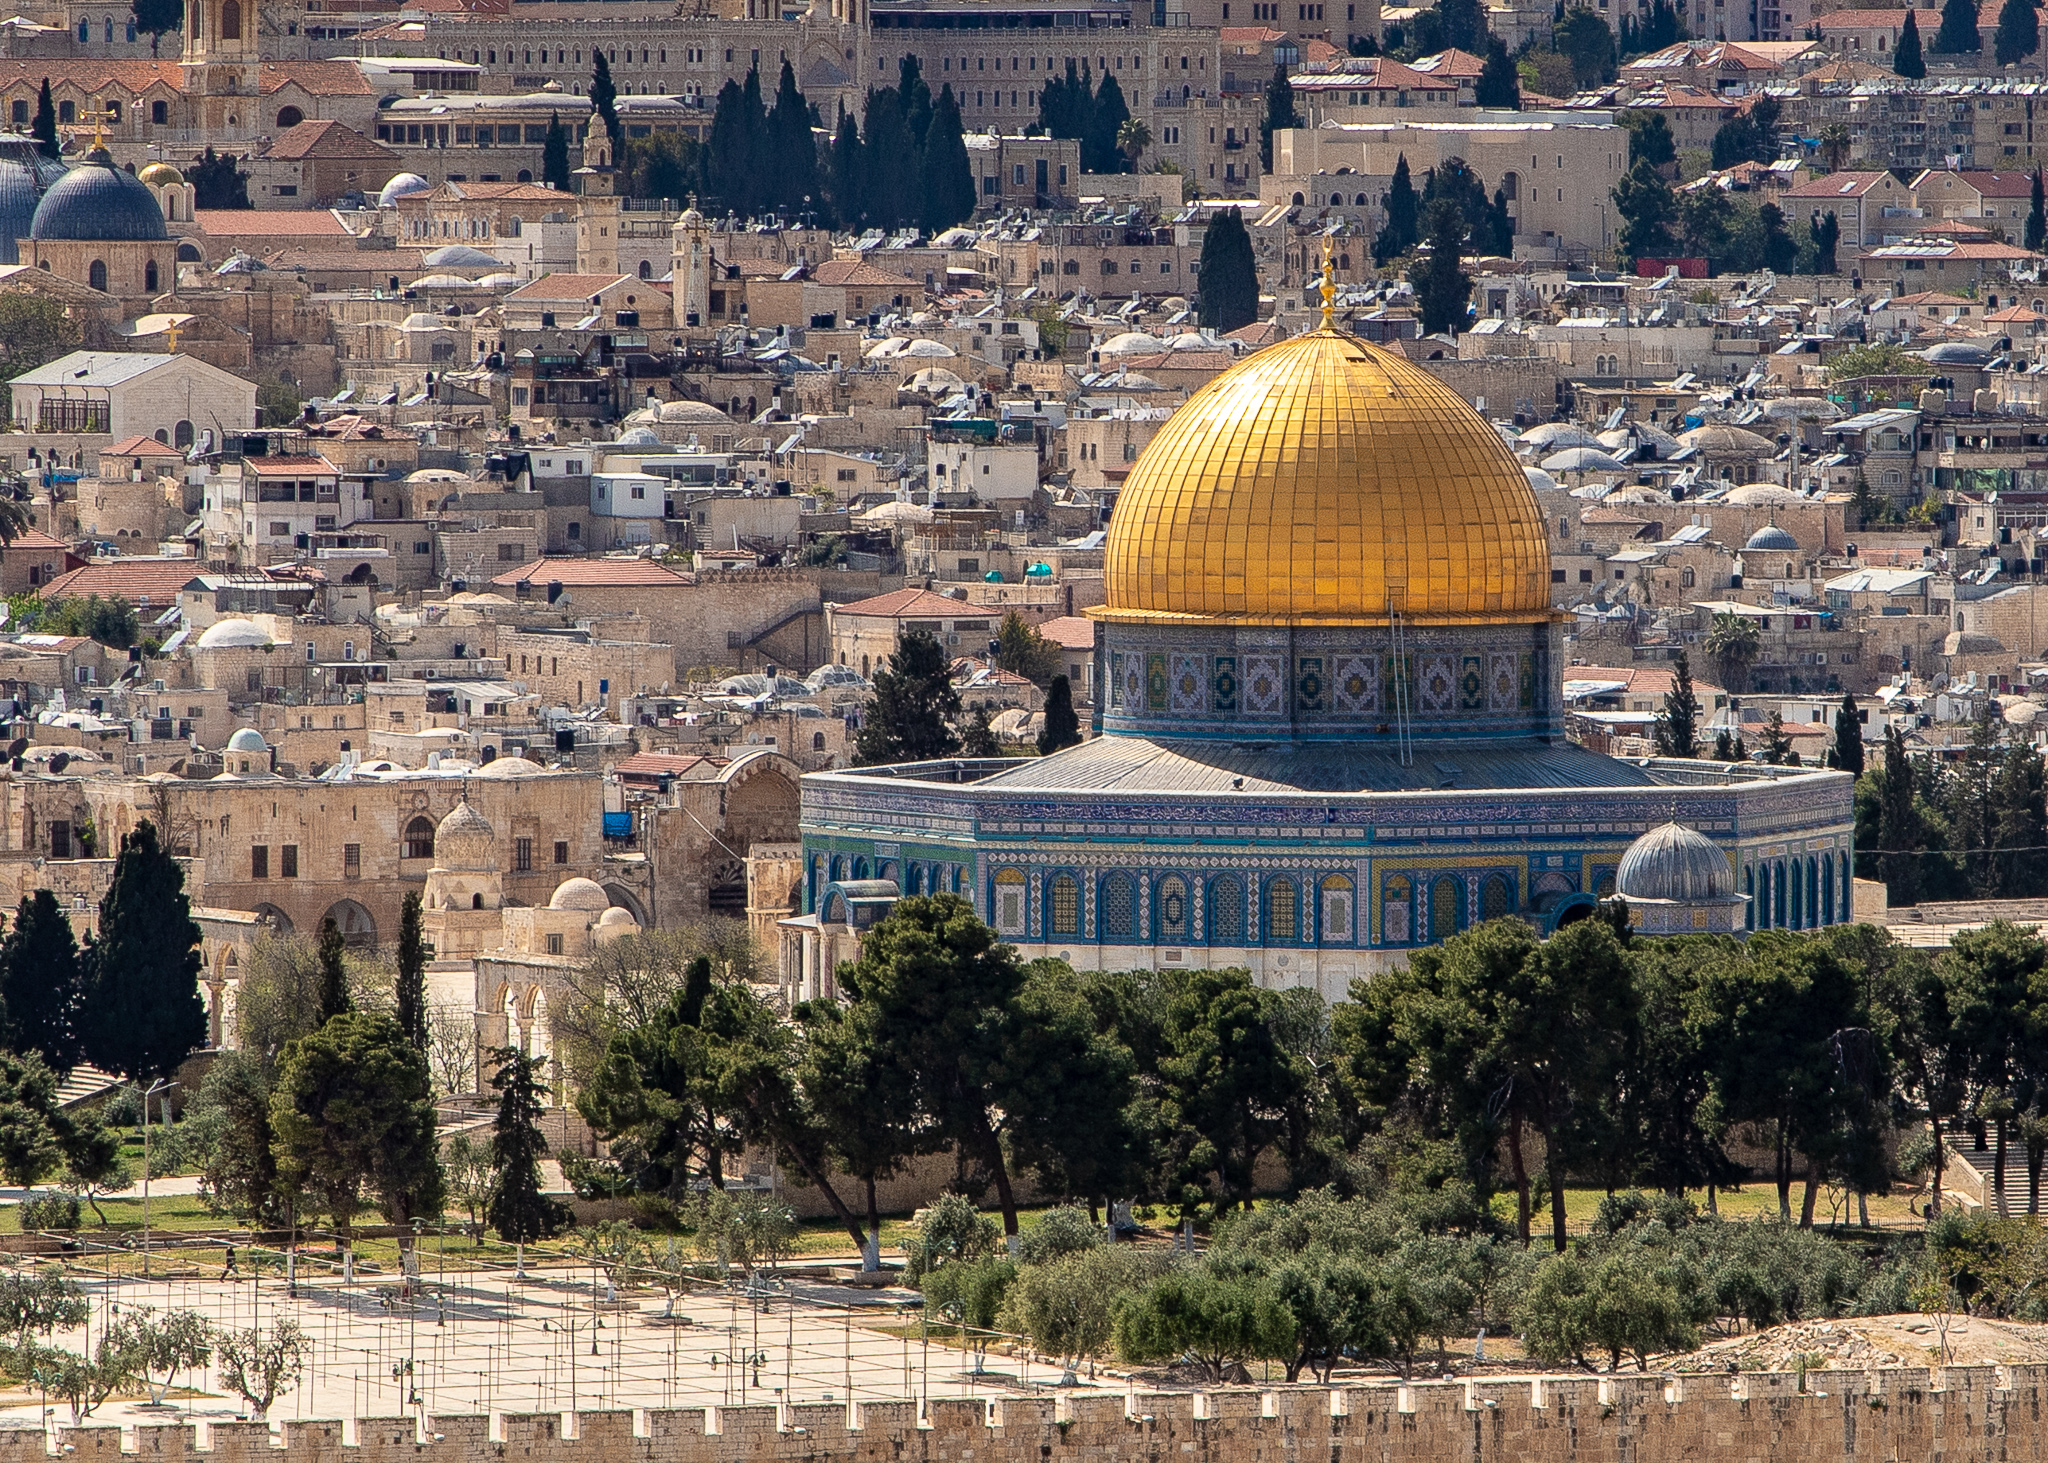 View of Dome of the Rock from Mt Olives